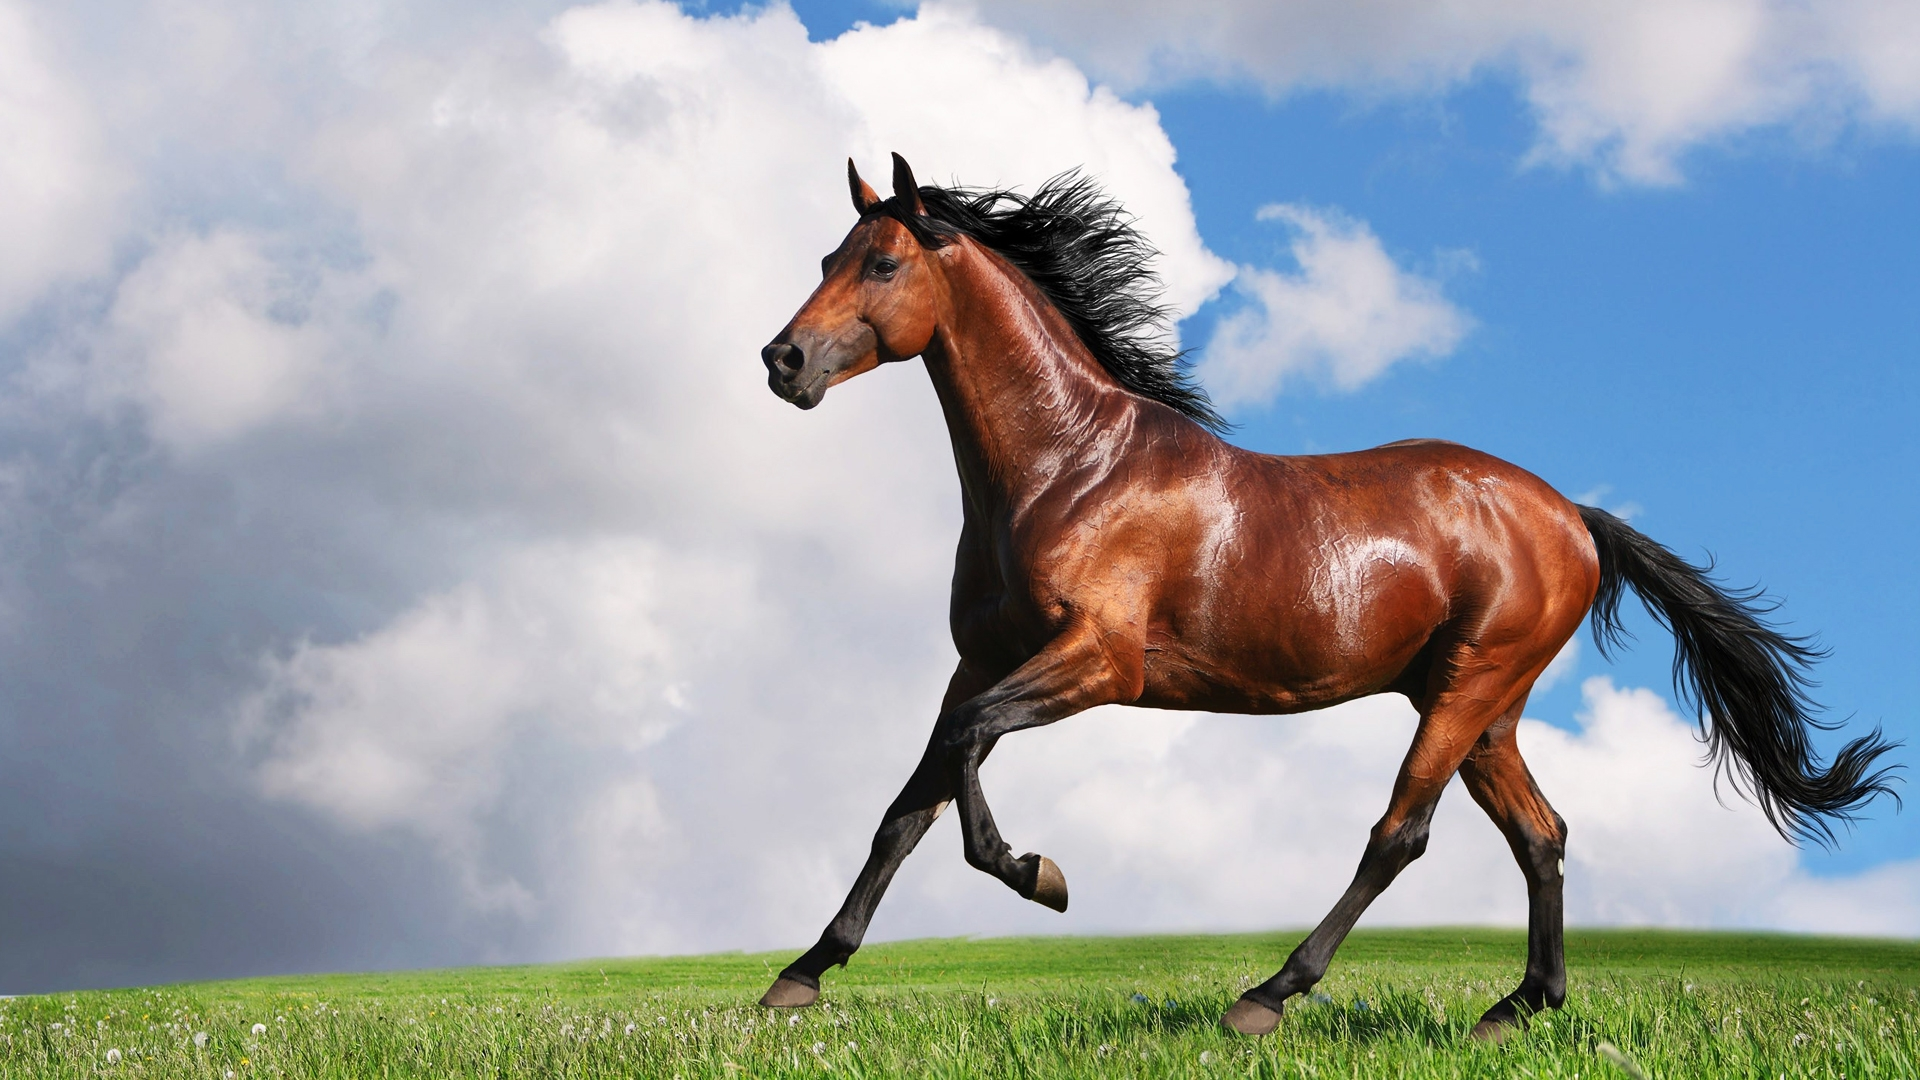 Horses High Definition Wallpapers. - photo#25